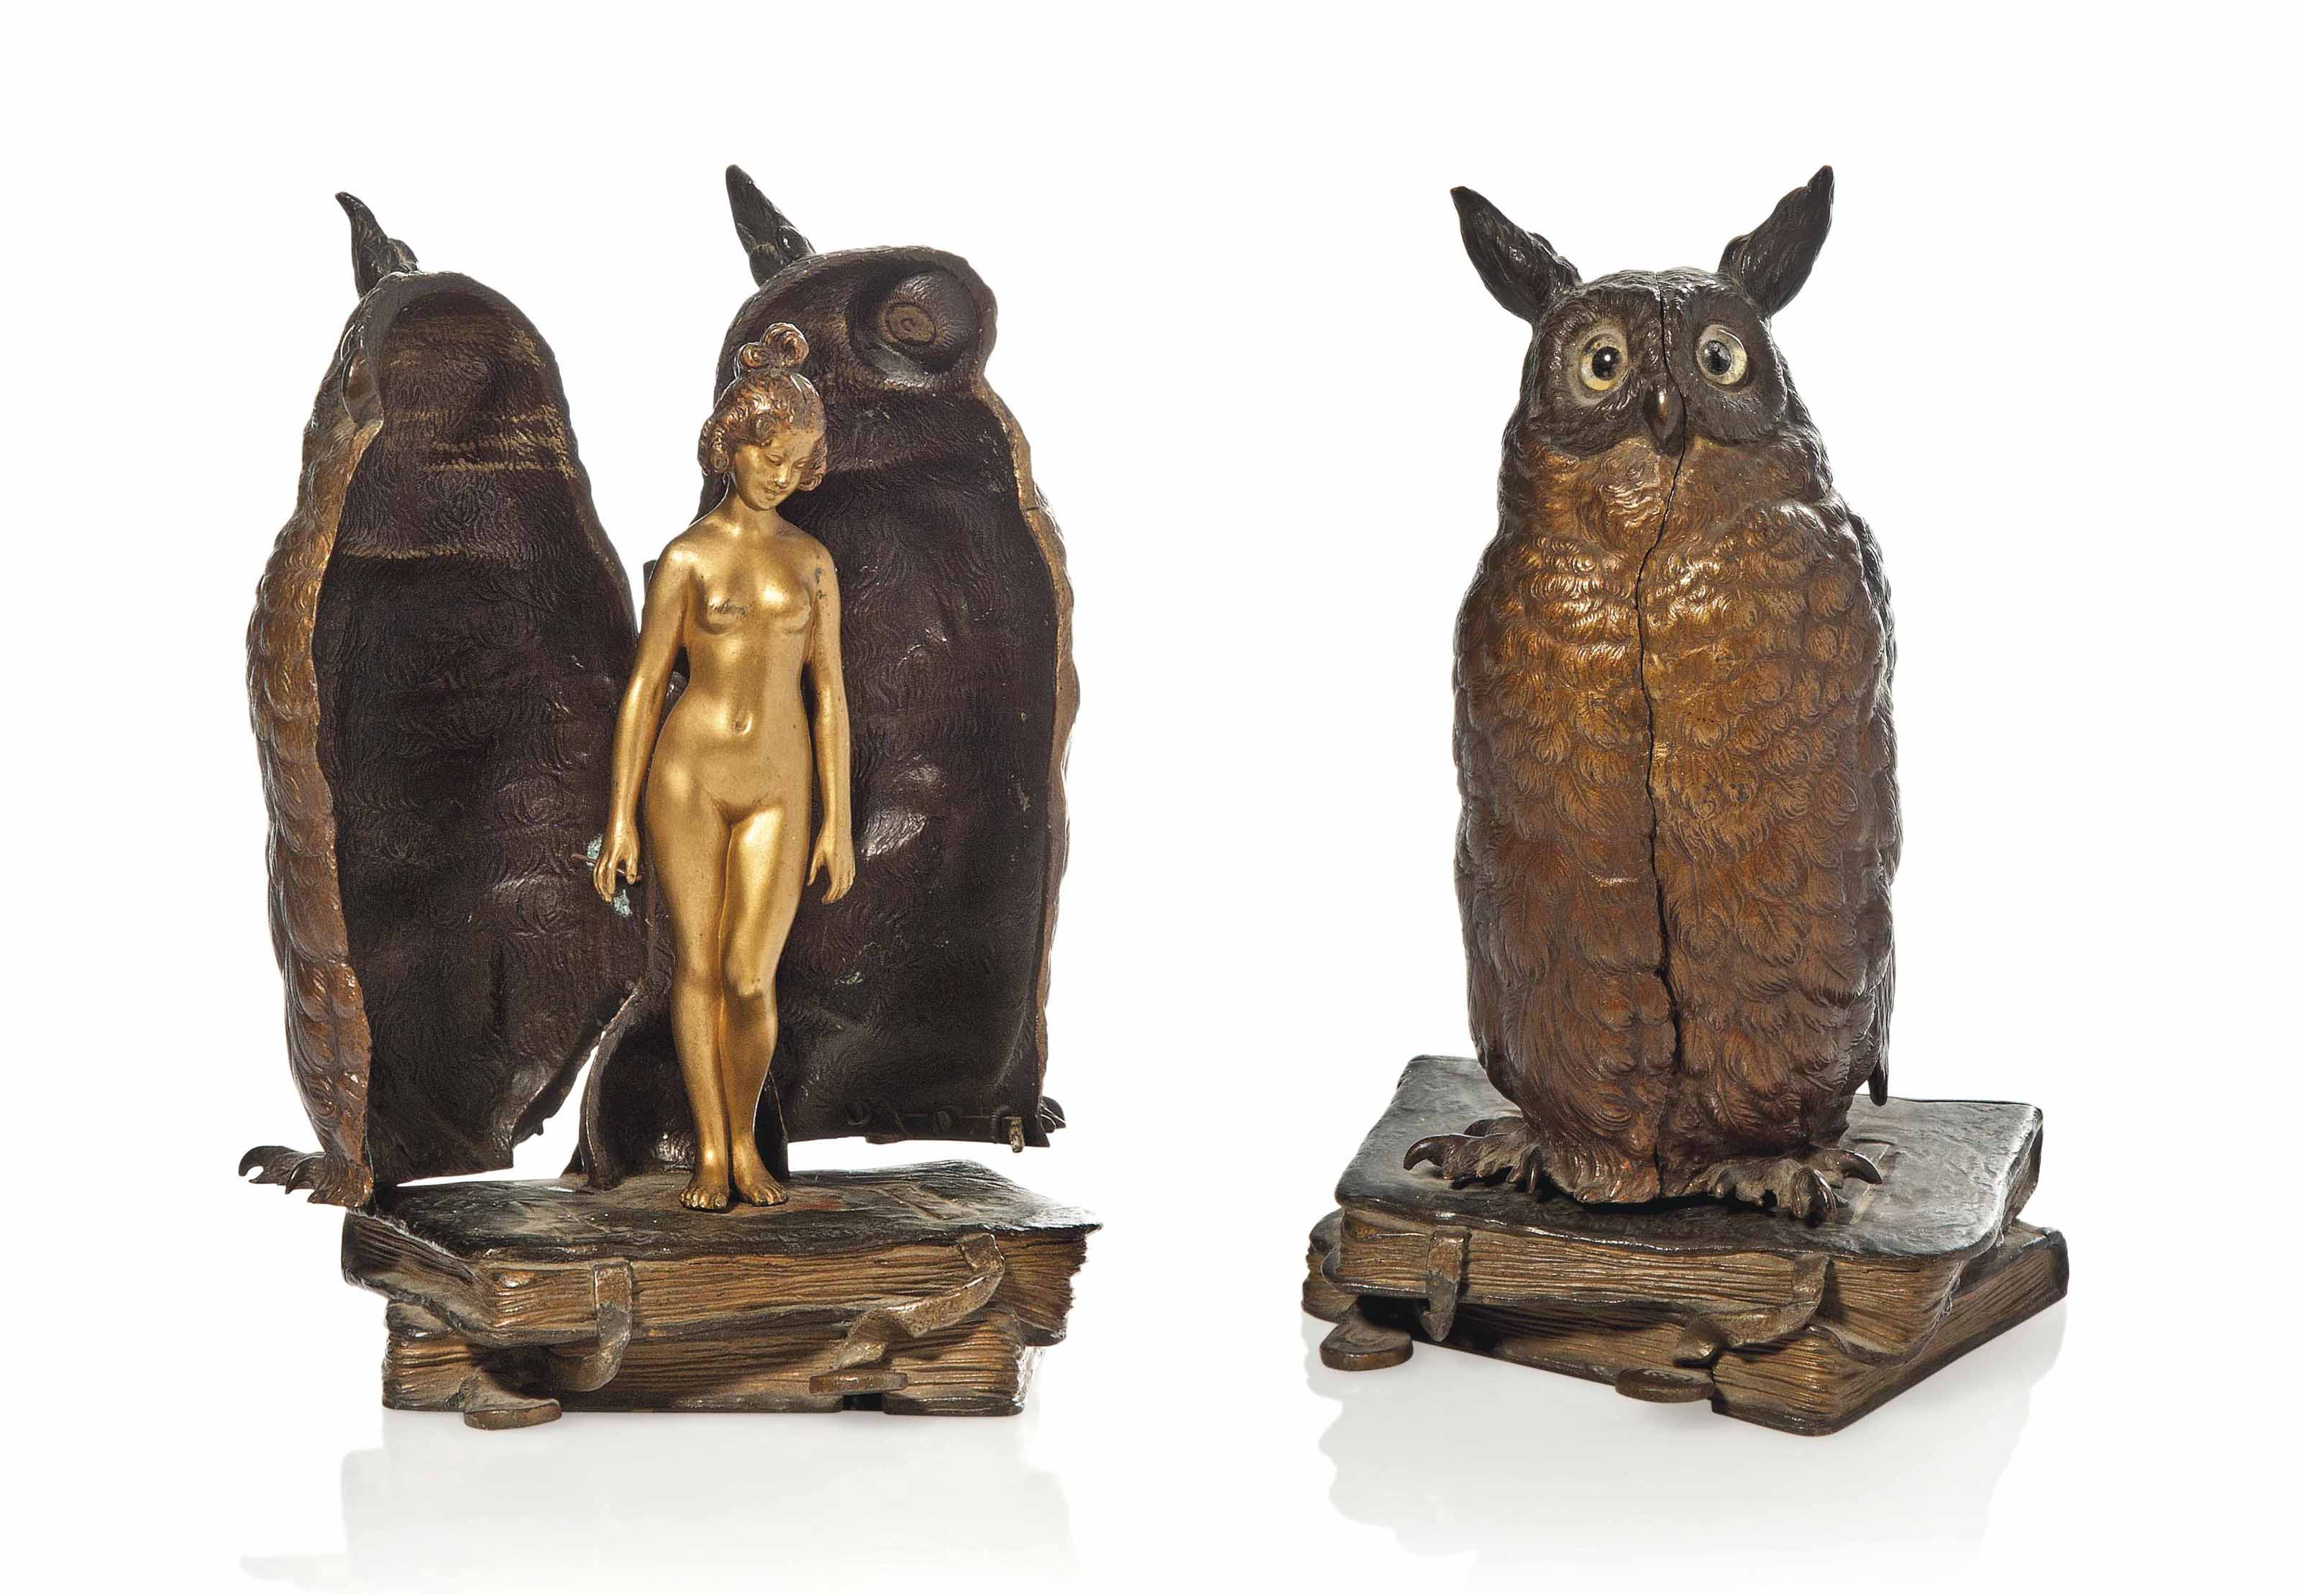 'OWL' A FRANZ XAVIER BERGMANN (1861-1936) COLD-PAINTED BRONZE GROUP